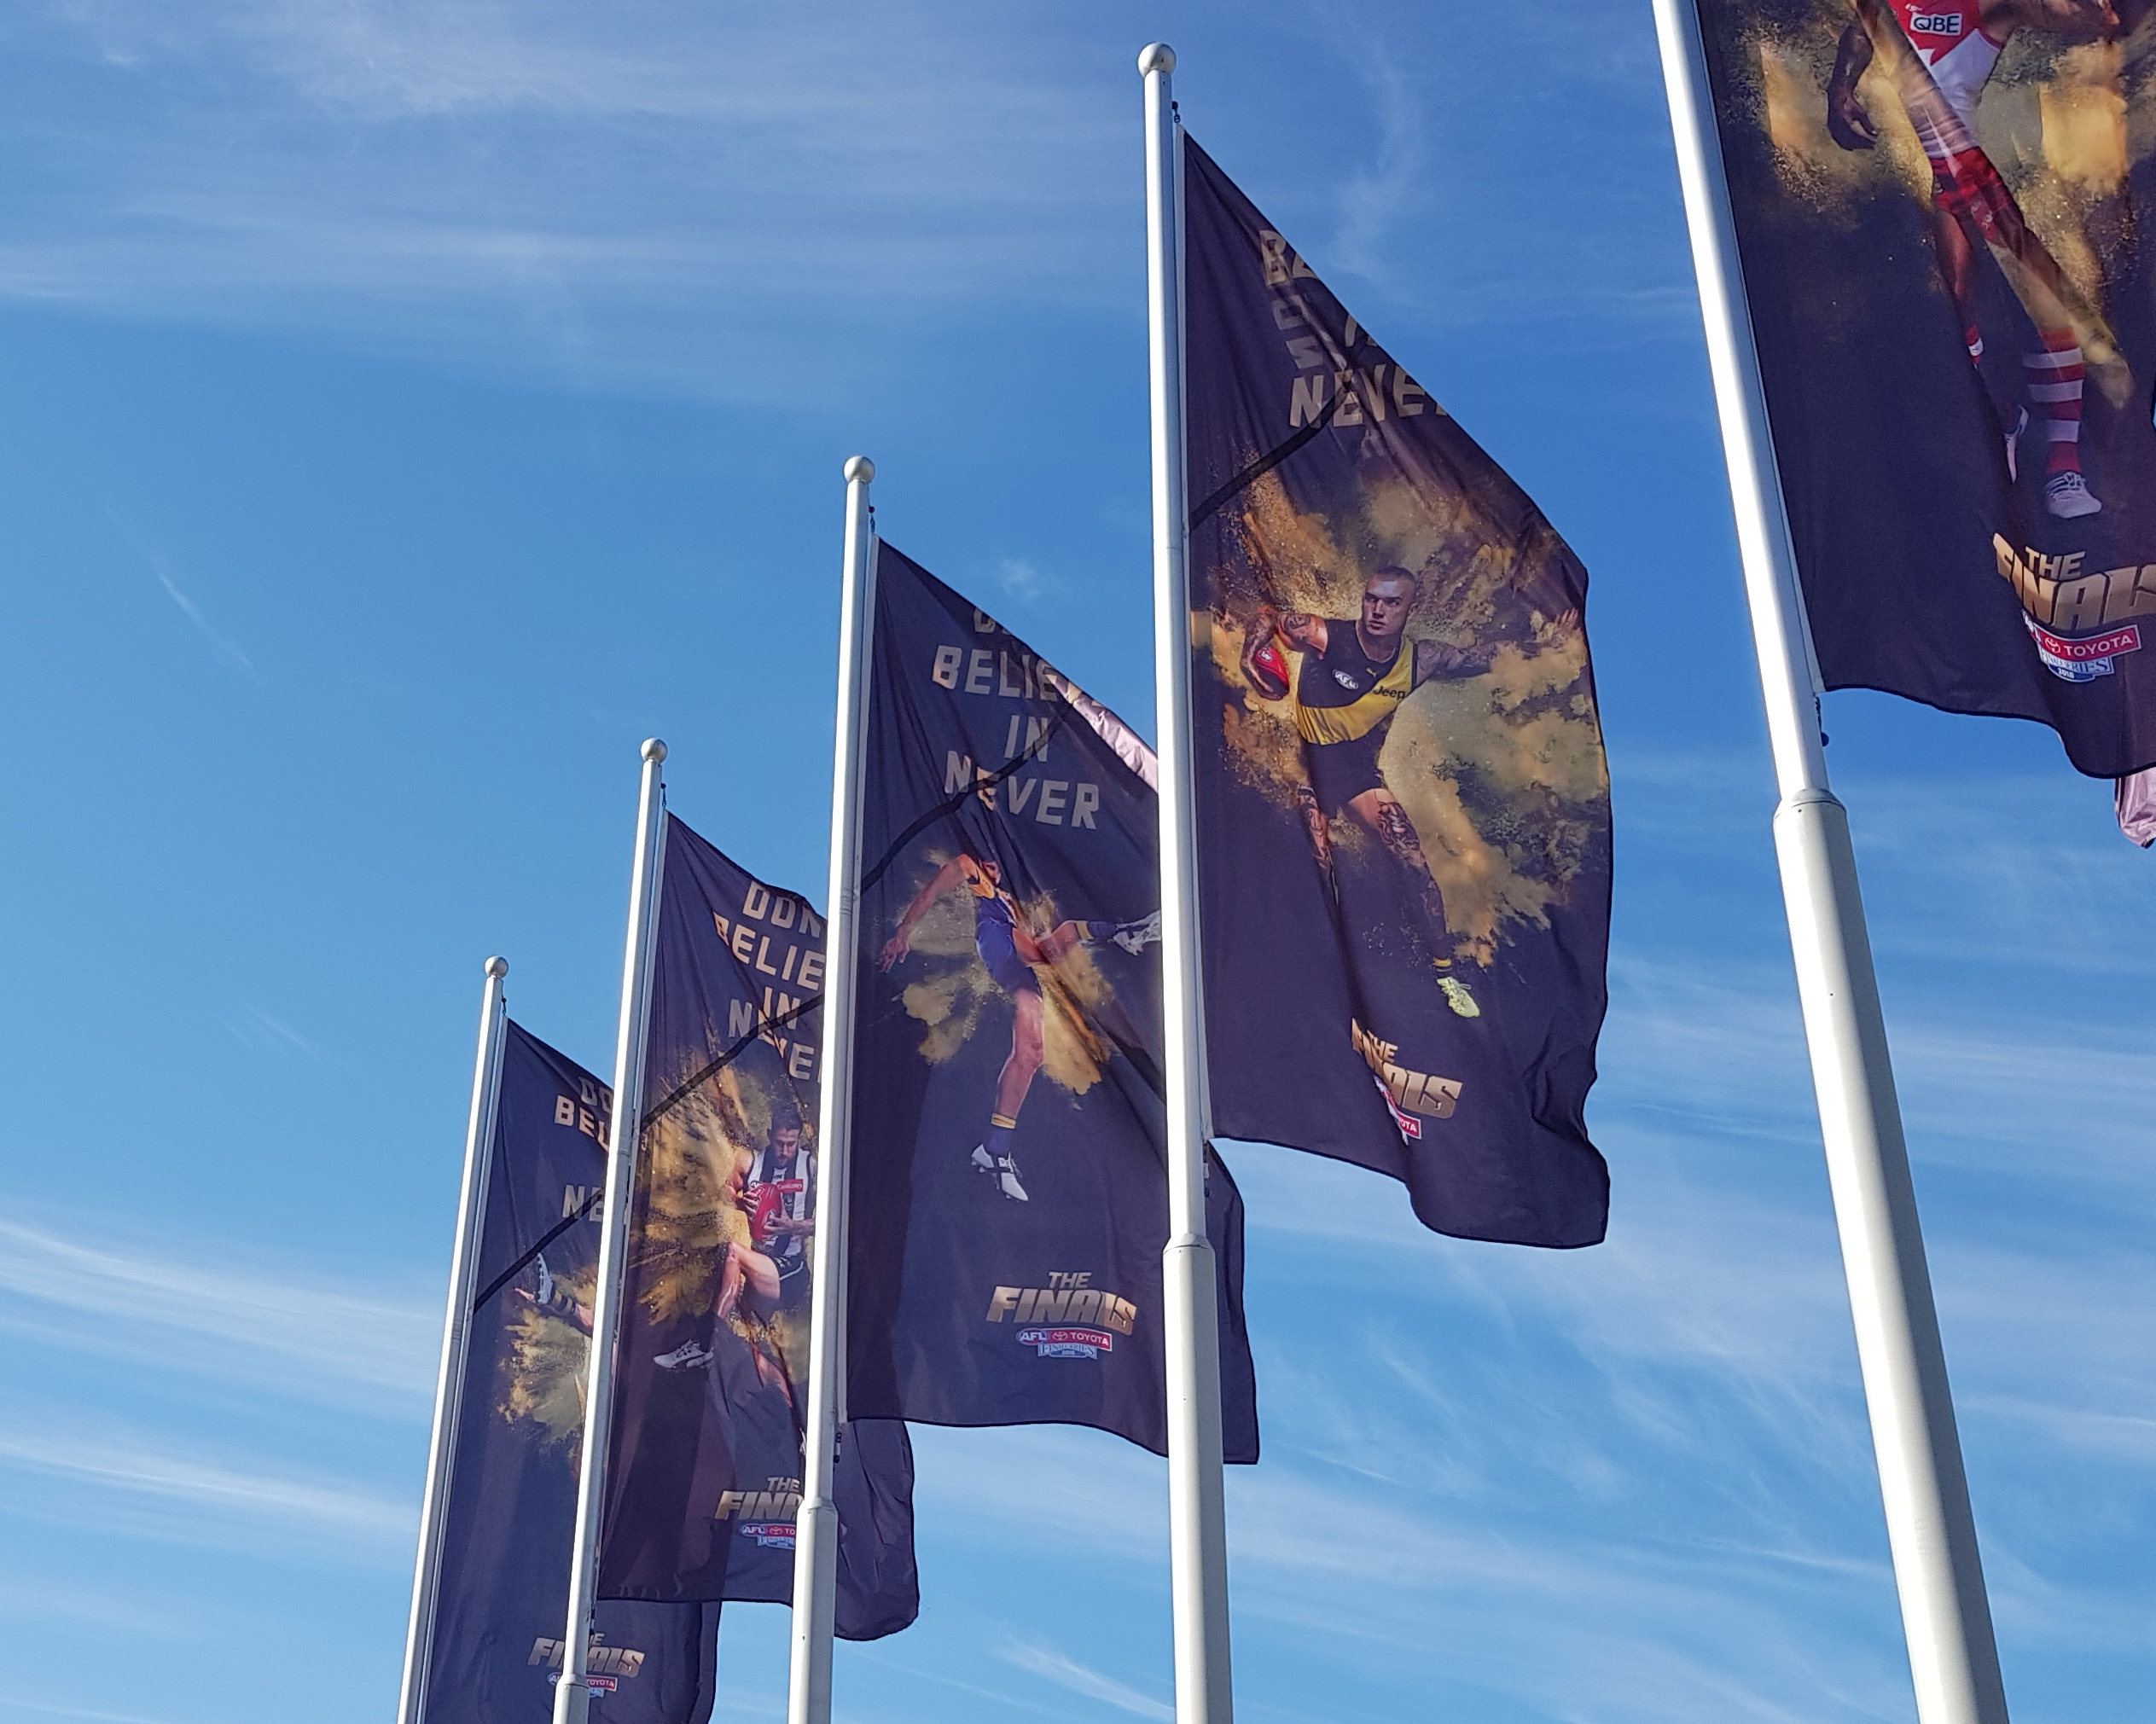 Featured Image Flags Advertising The